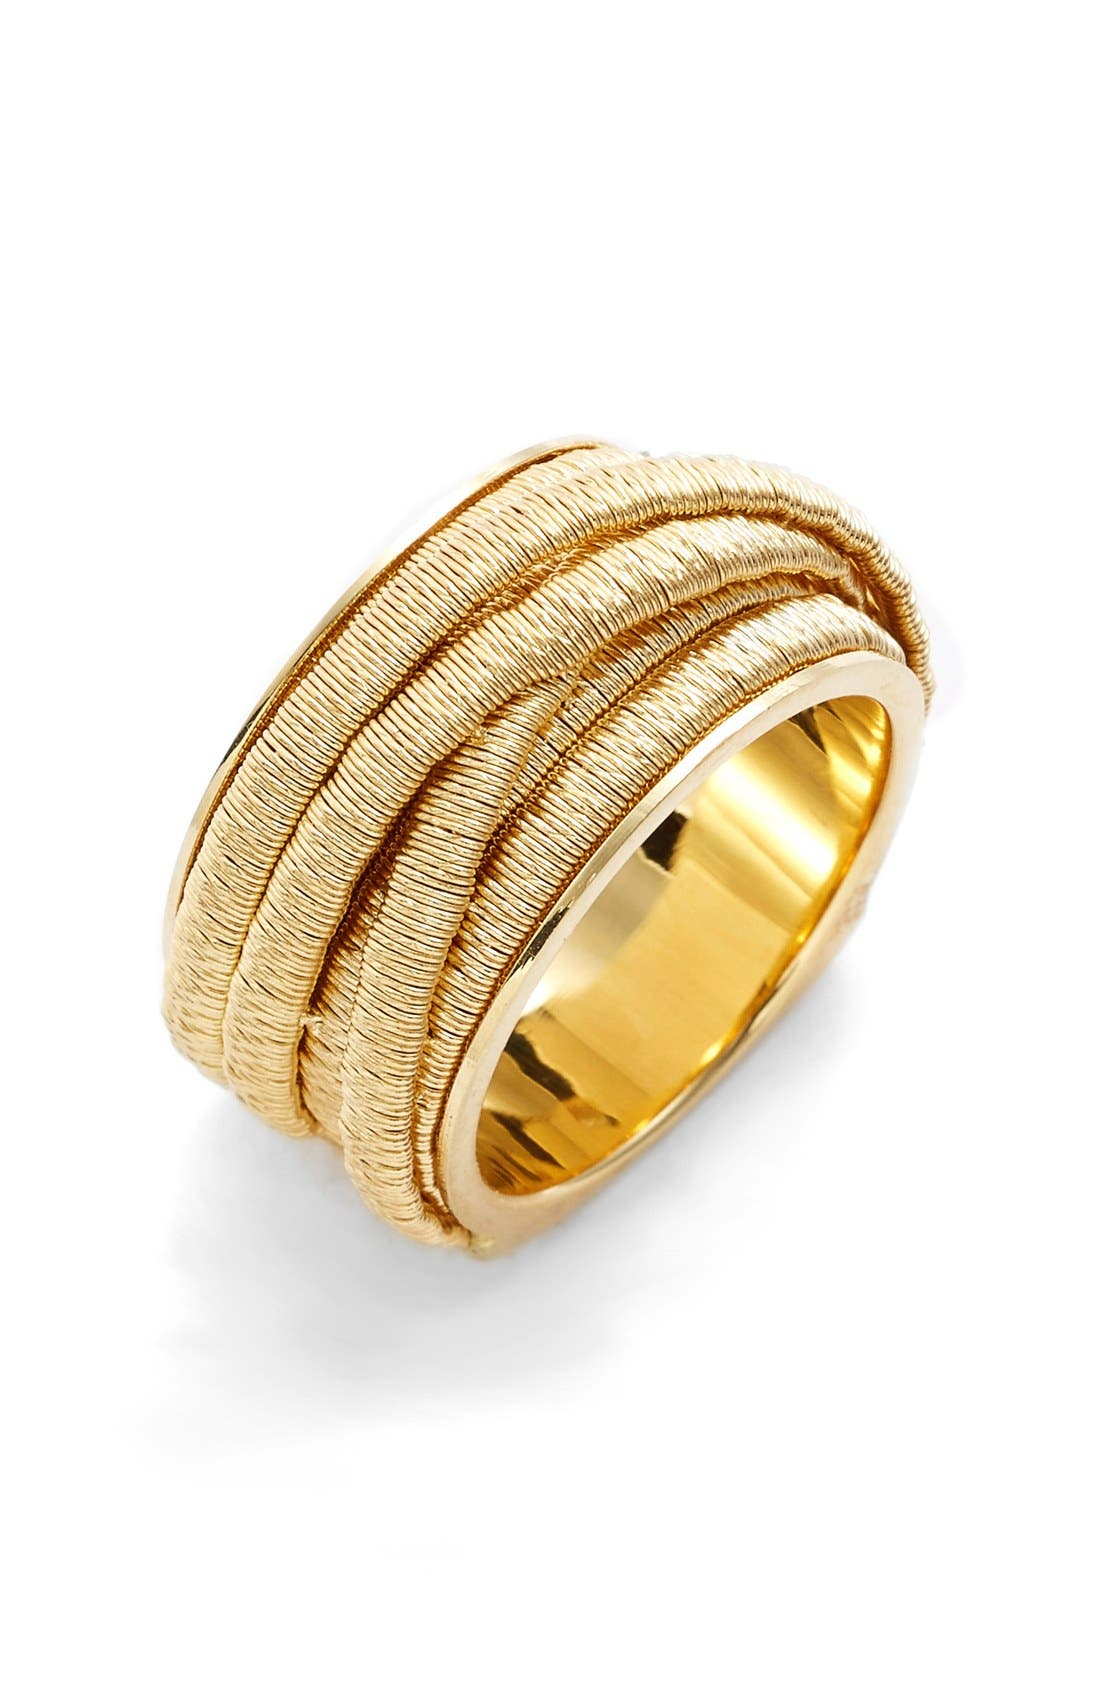 Alternate Image 1 Selected - Marco Bicego 'Cairo' Multi Strand Ring